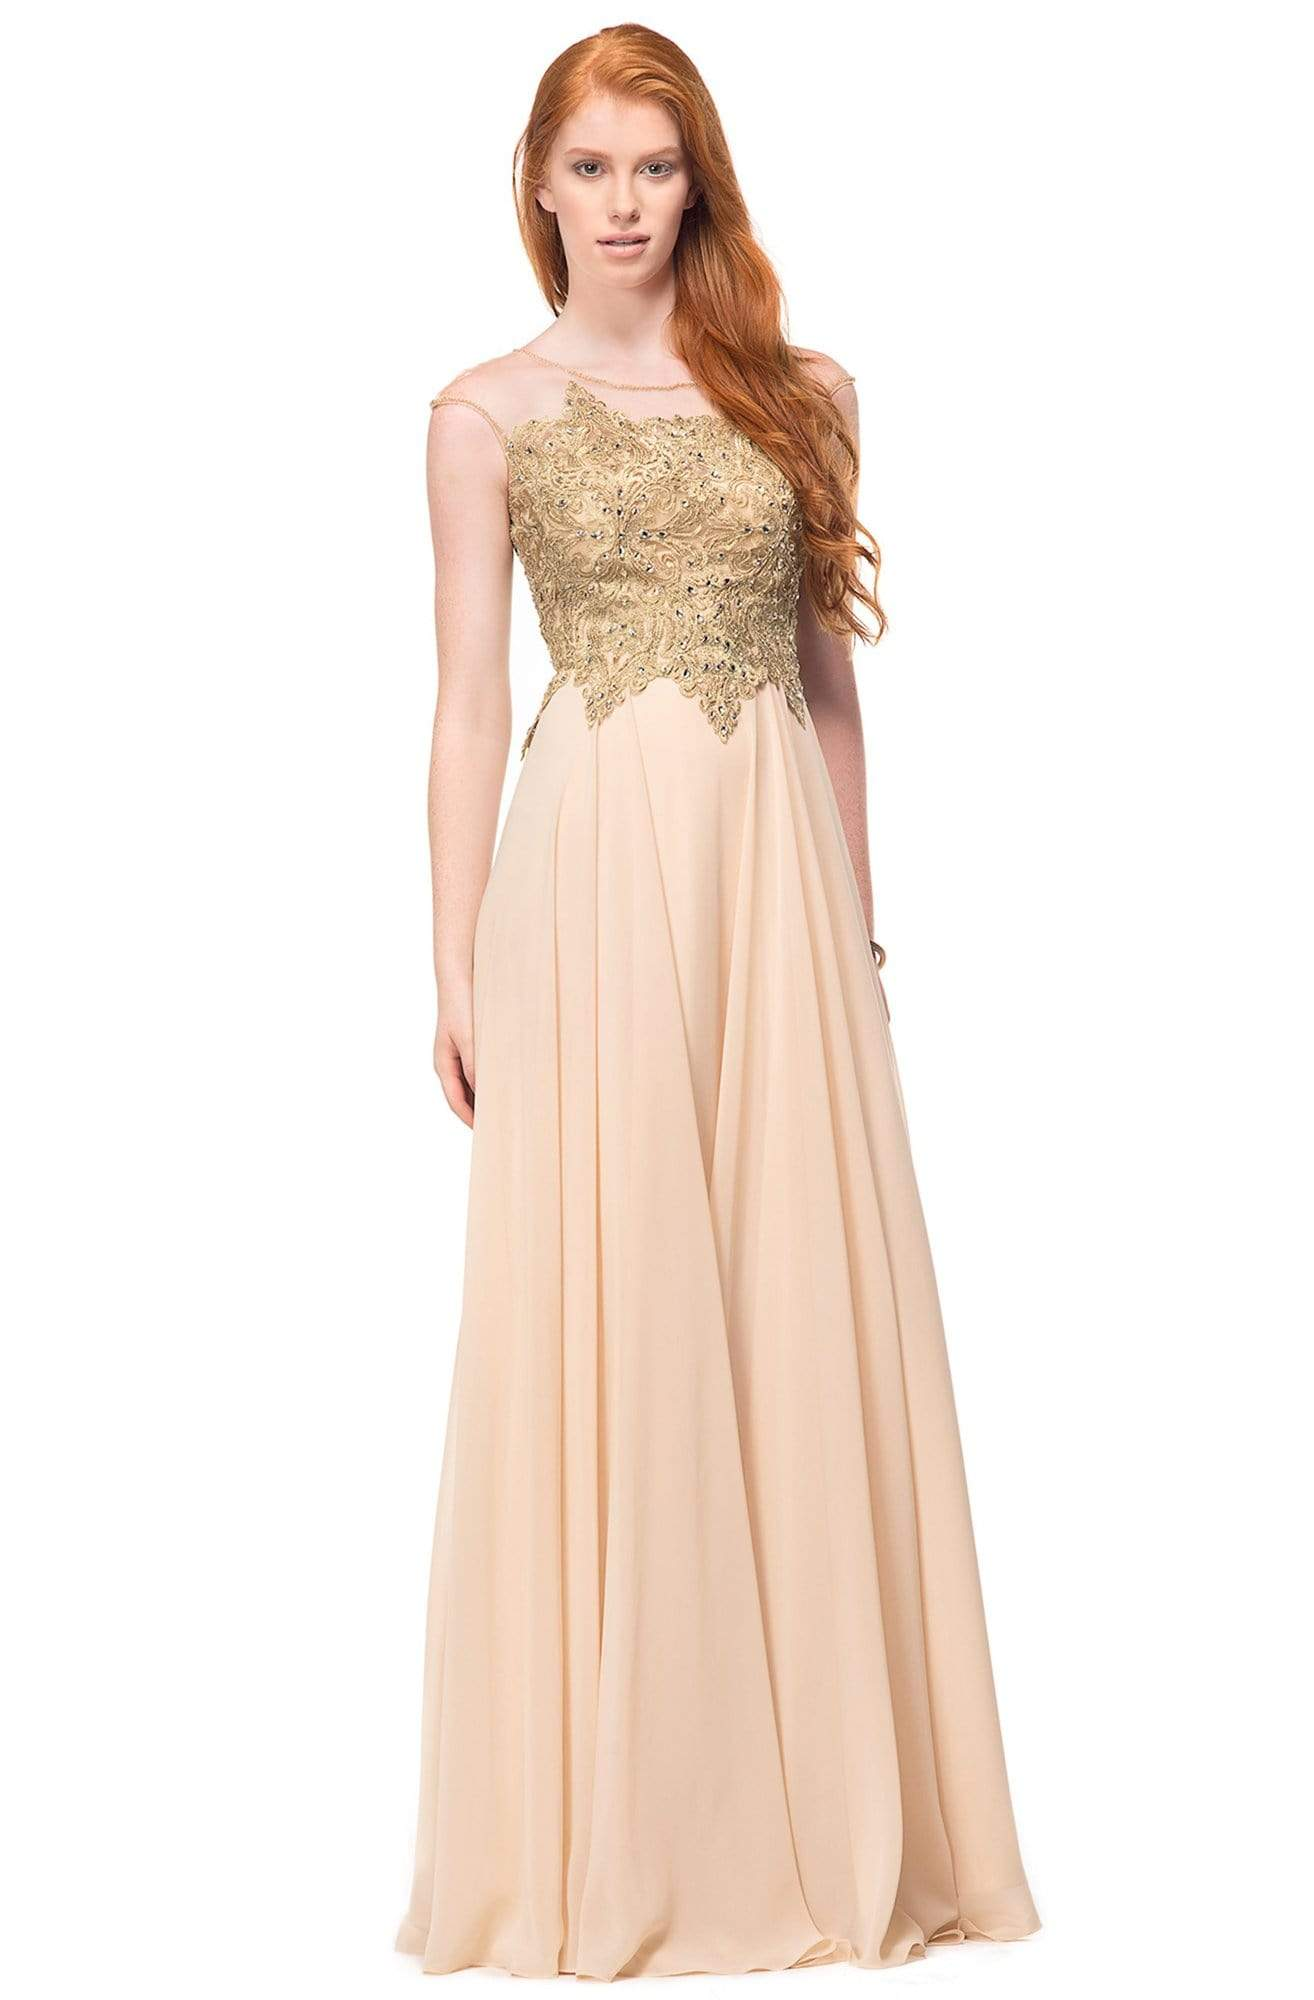 Marsoni by Colors - M107 Embroidered Illusion Silk Gown Special Occasion Dress 2 / Champagne